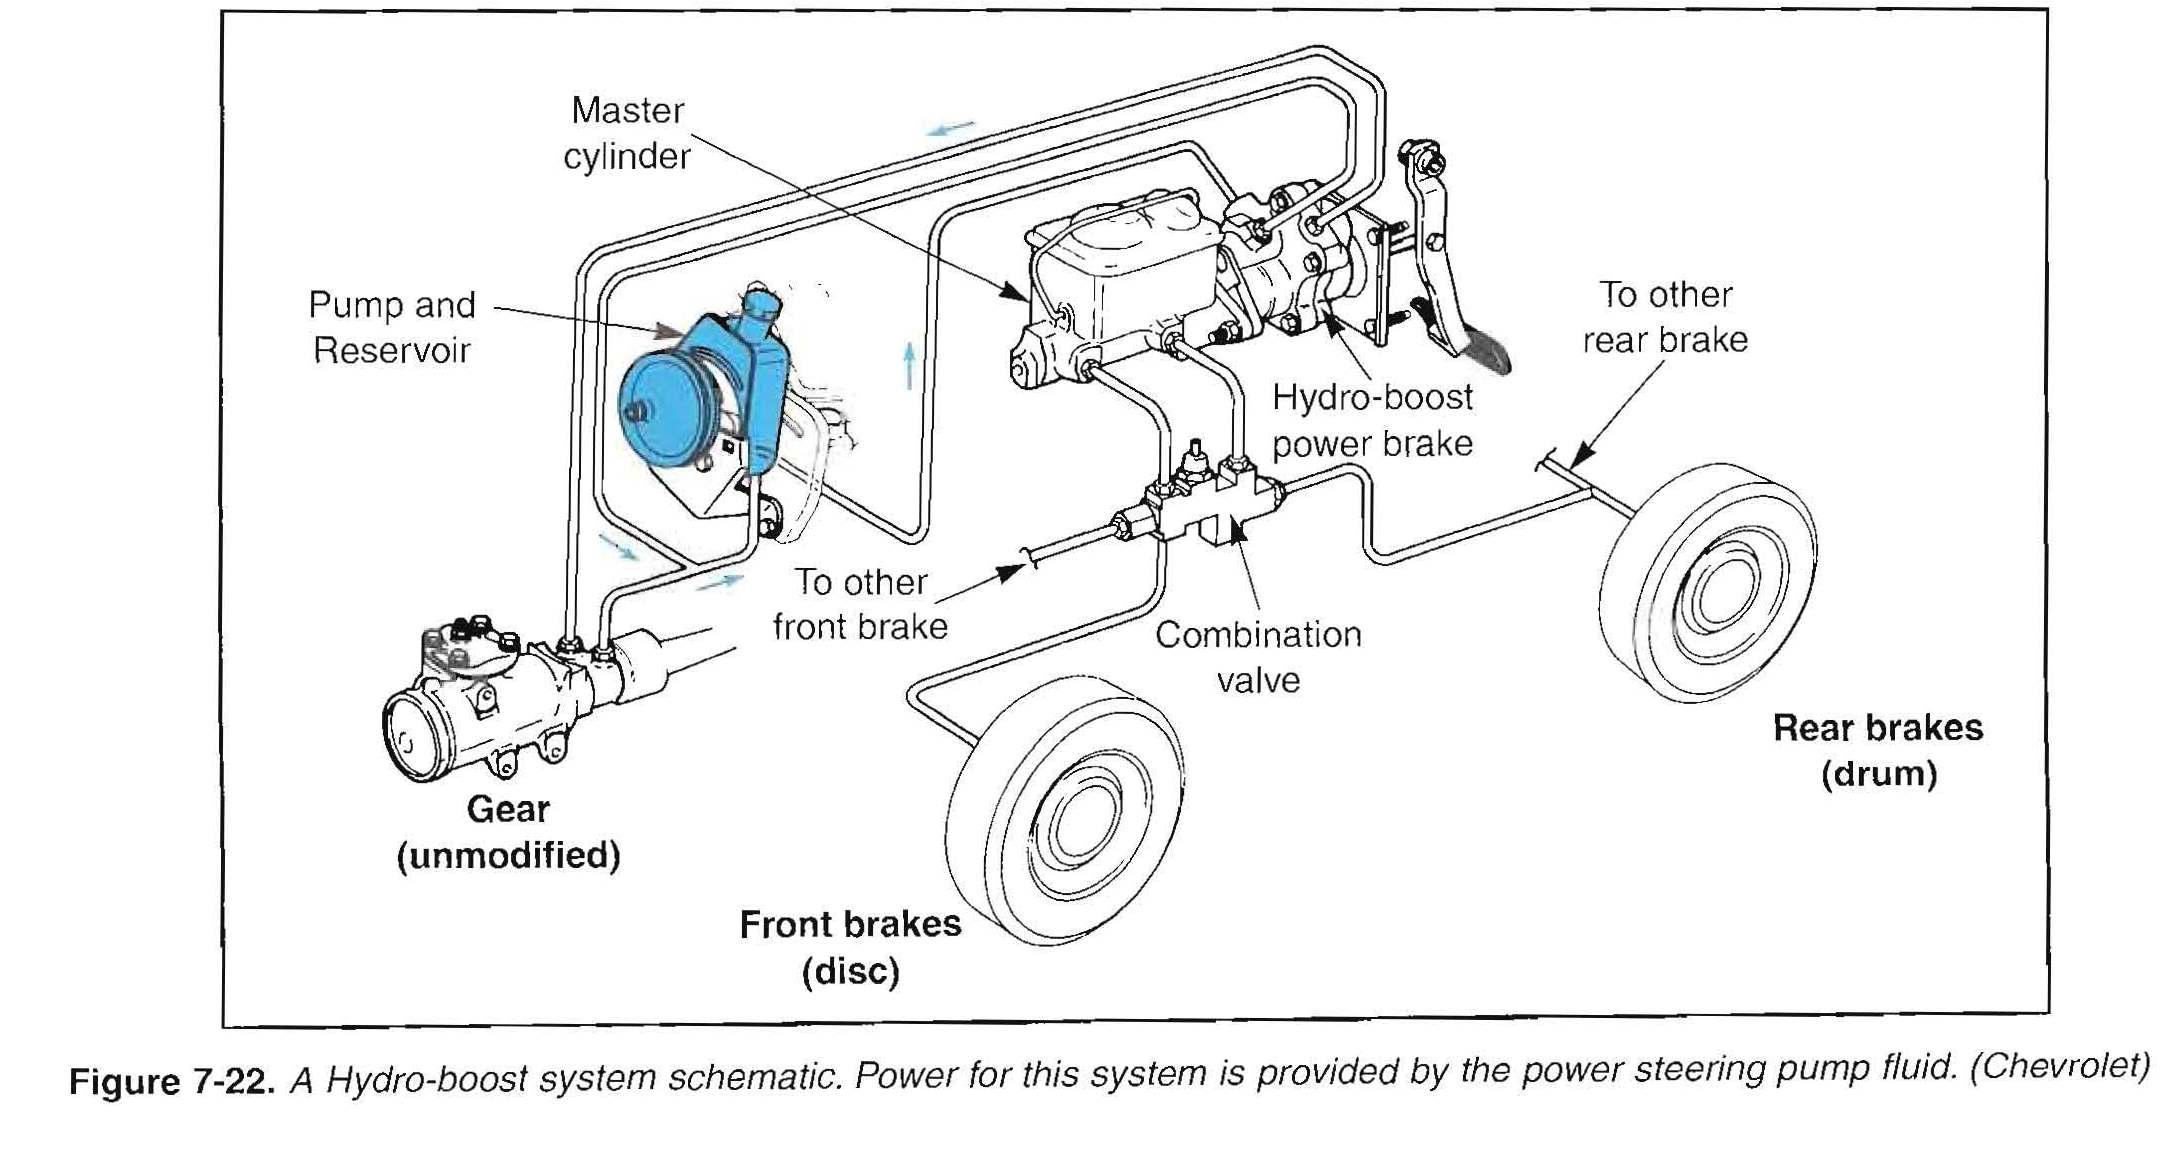 chevy hydroboost power steering pump diagram  chevy  free engine image for user manual download